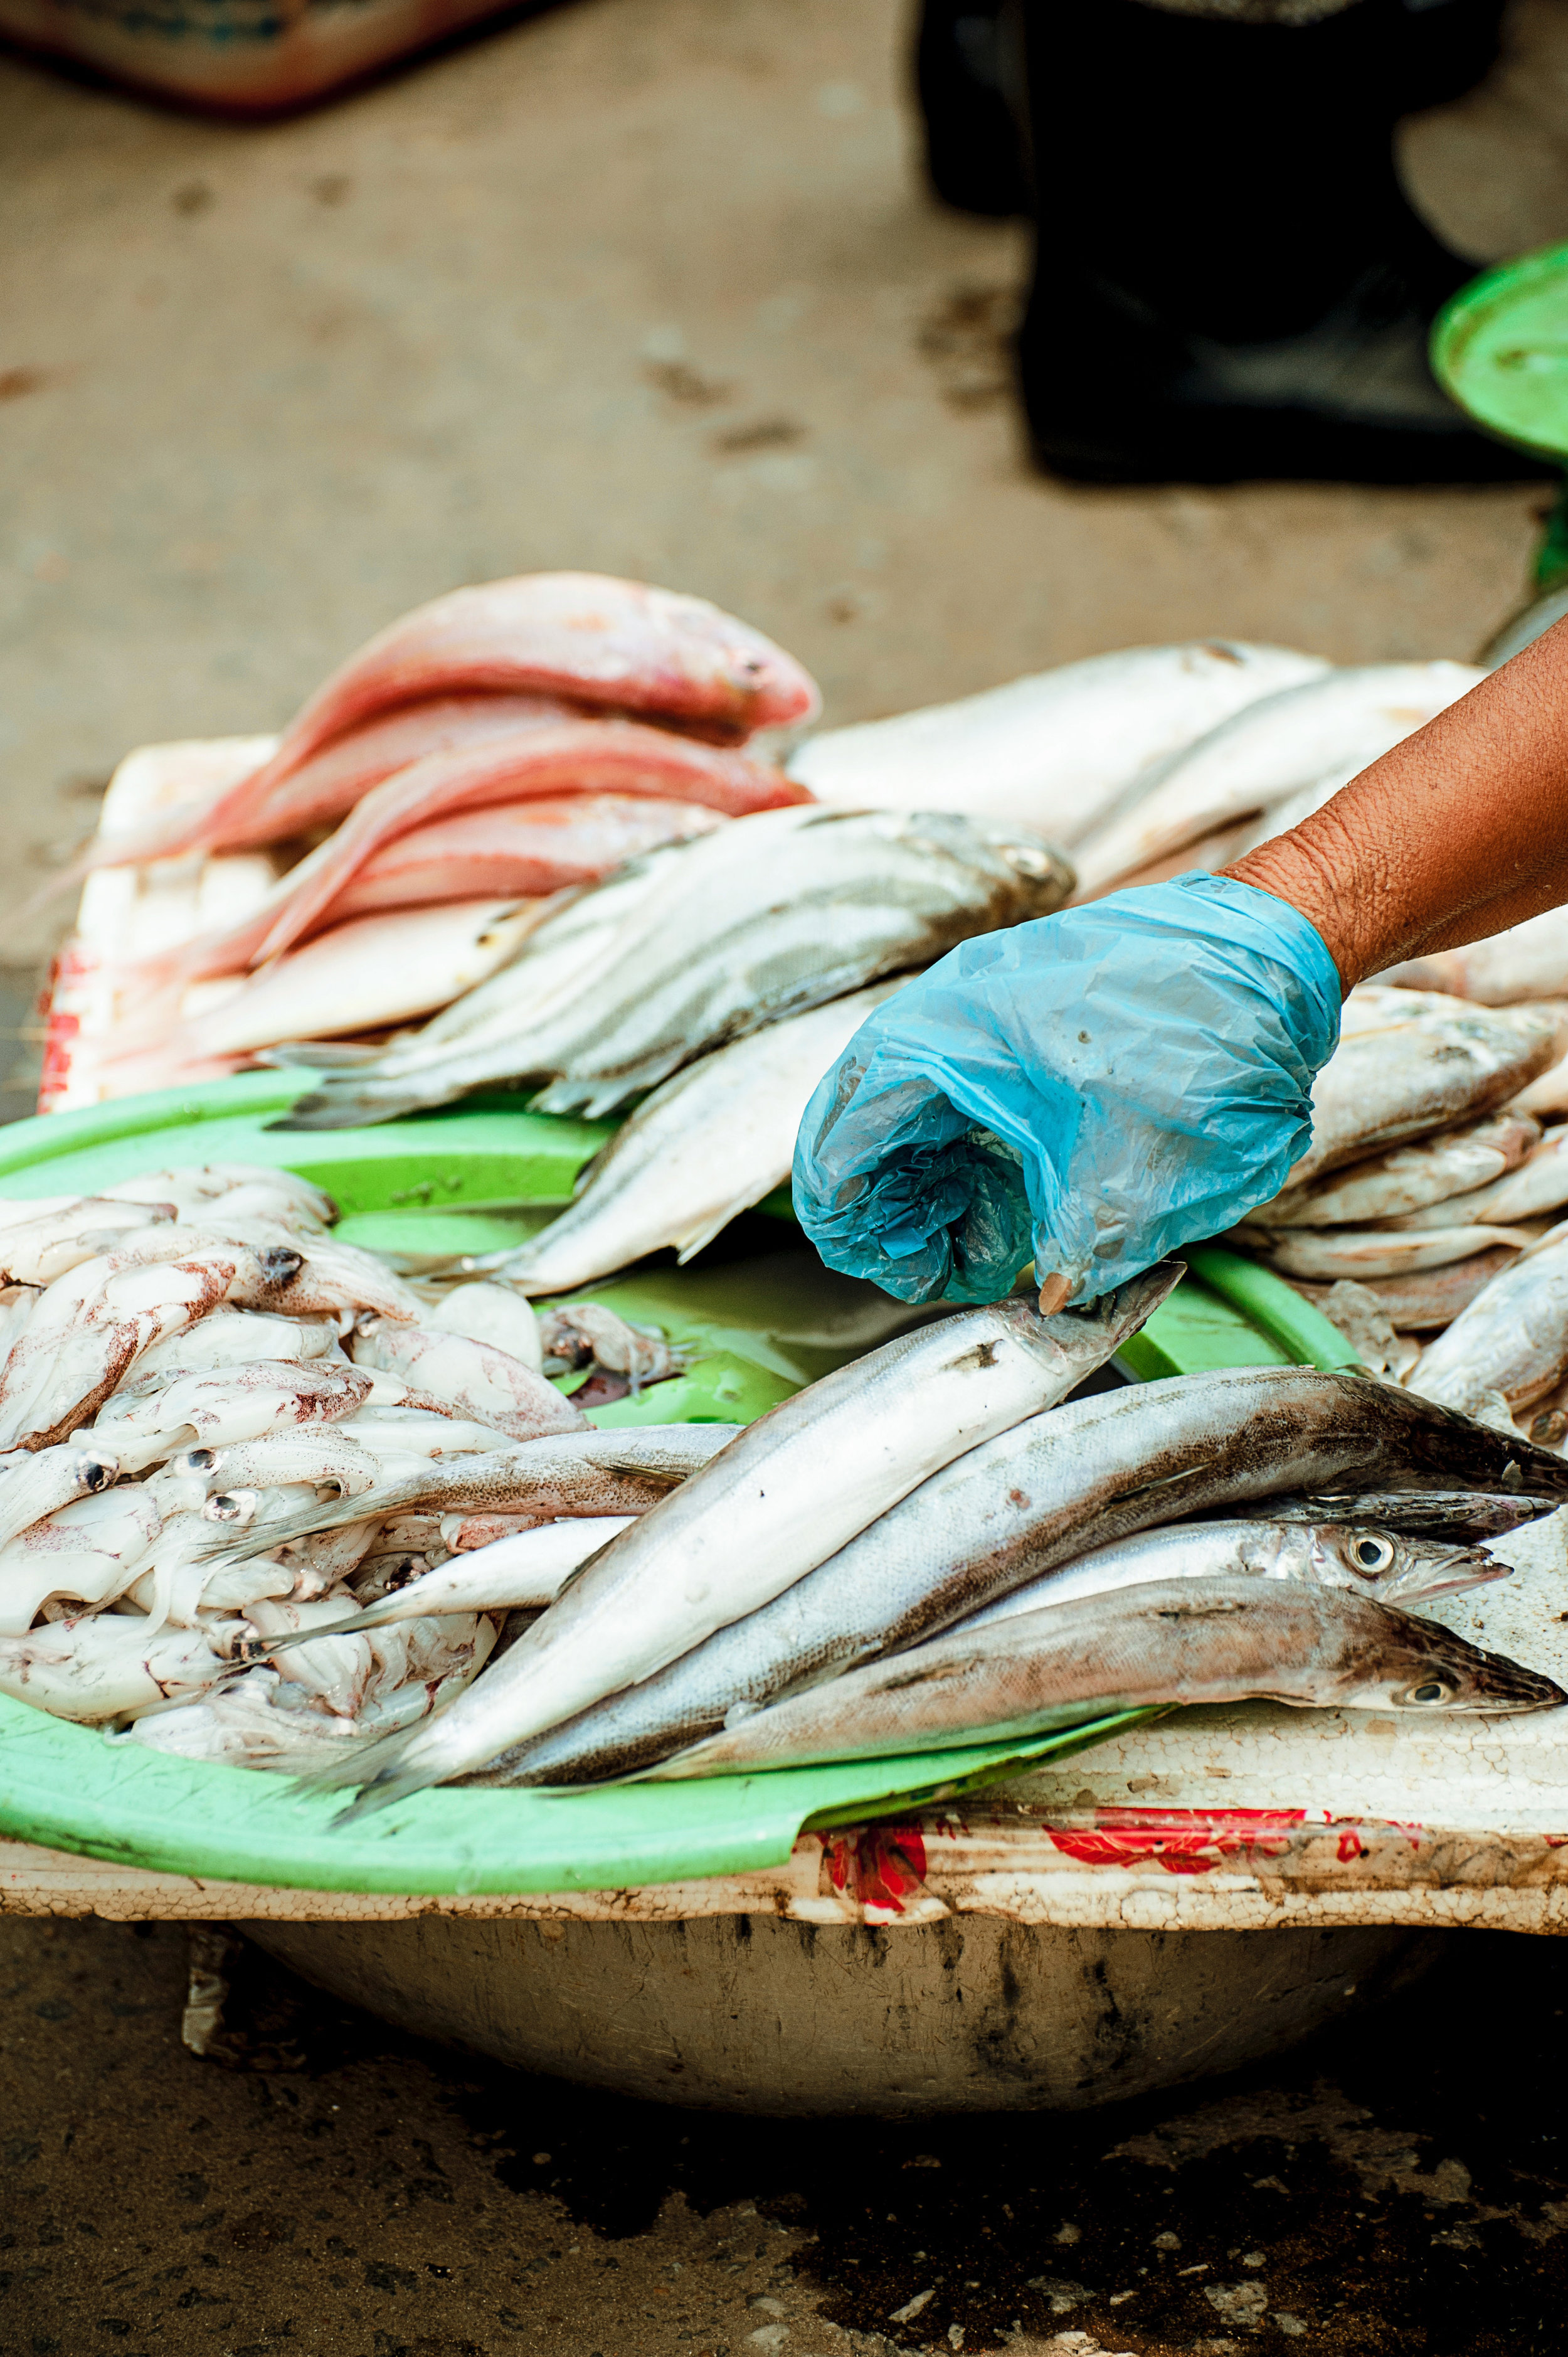 You have plastic in you if you have eaten seafood or eat/drink from plastic containers. -